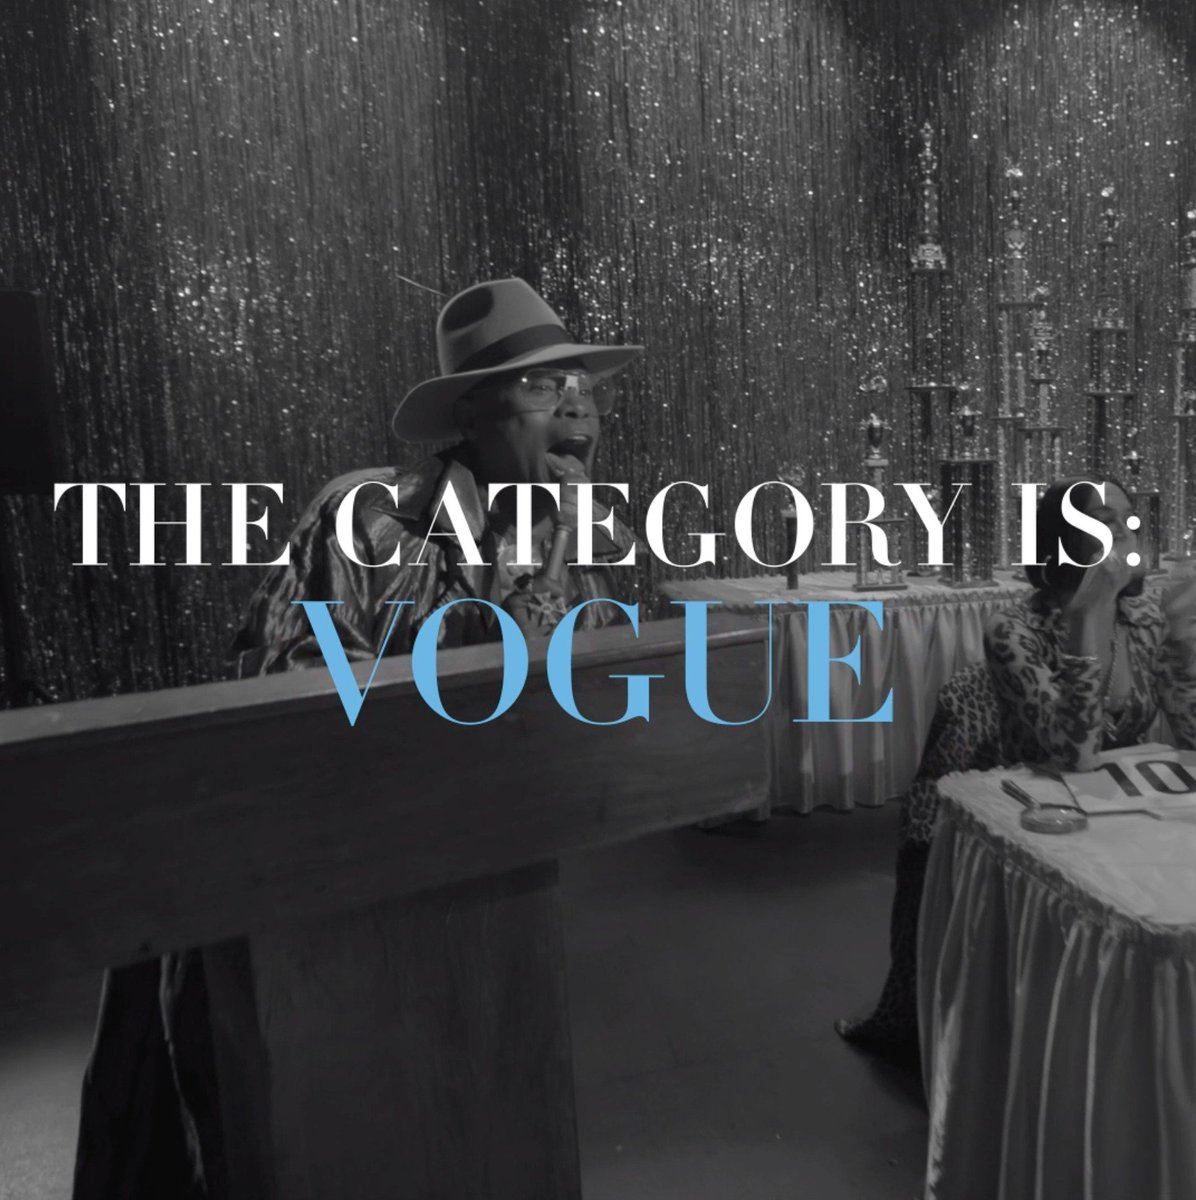 We are deep in this vogue. #PoseFX